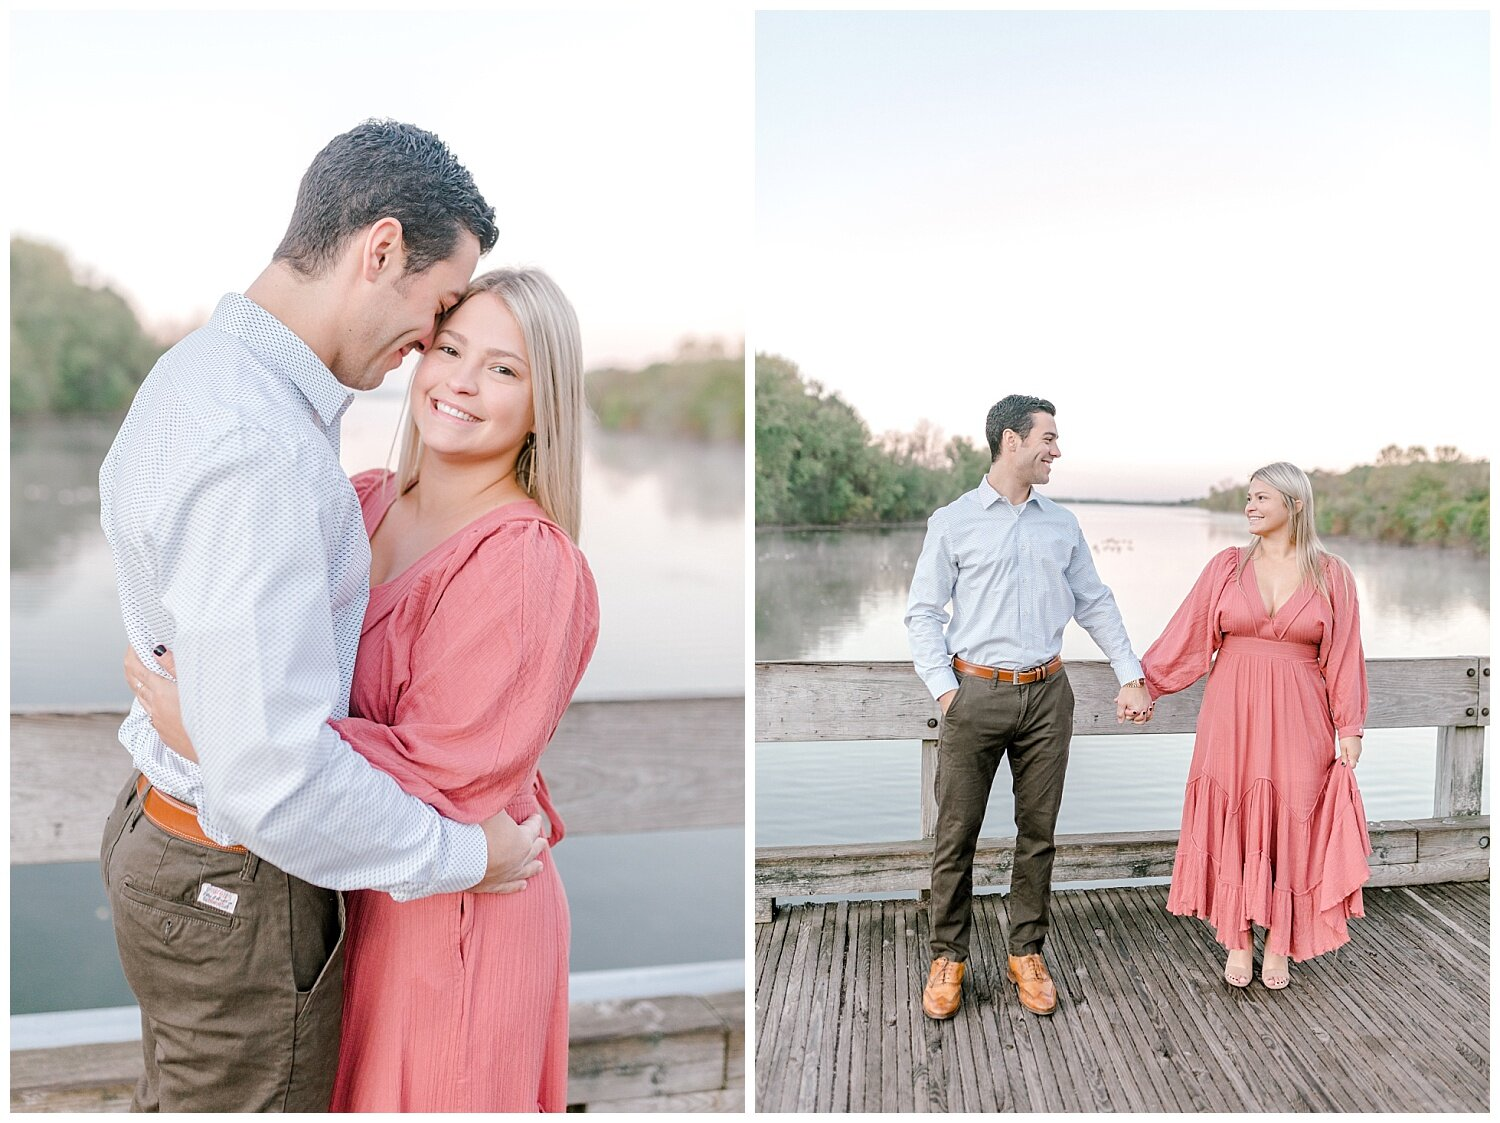 Peace Valley Park Doylestown bucks county PA fall sunrise engagement session  lehigh valley pennsylvania based wedding and lifestyle photographer Jeannie Lytle of Lytle Photography Company_0001.jpg